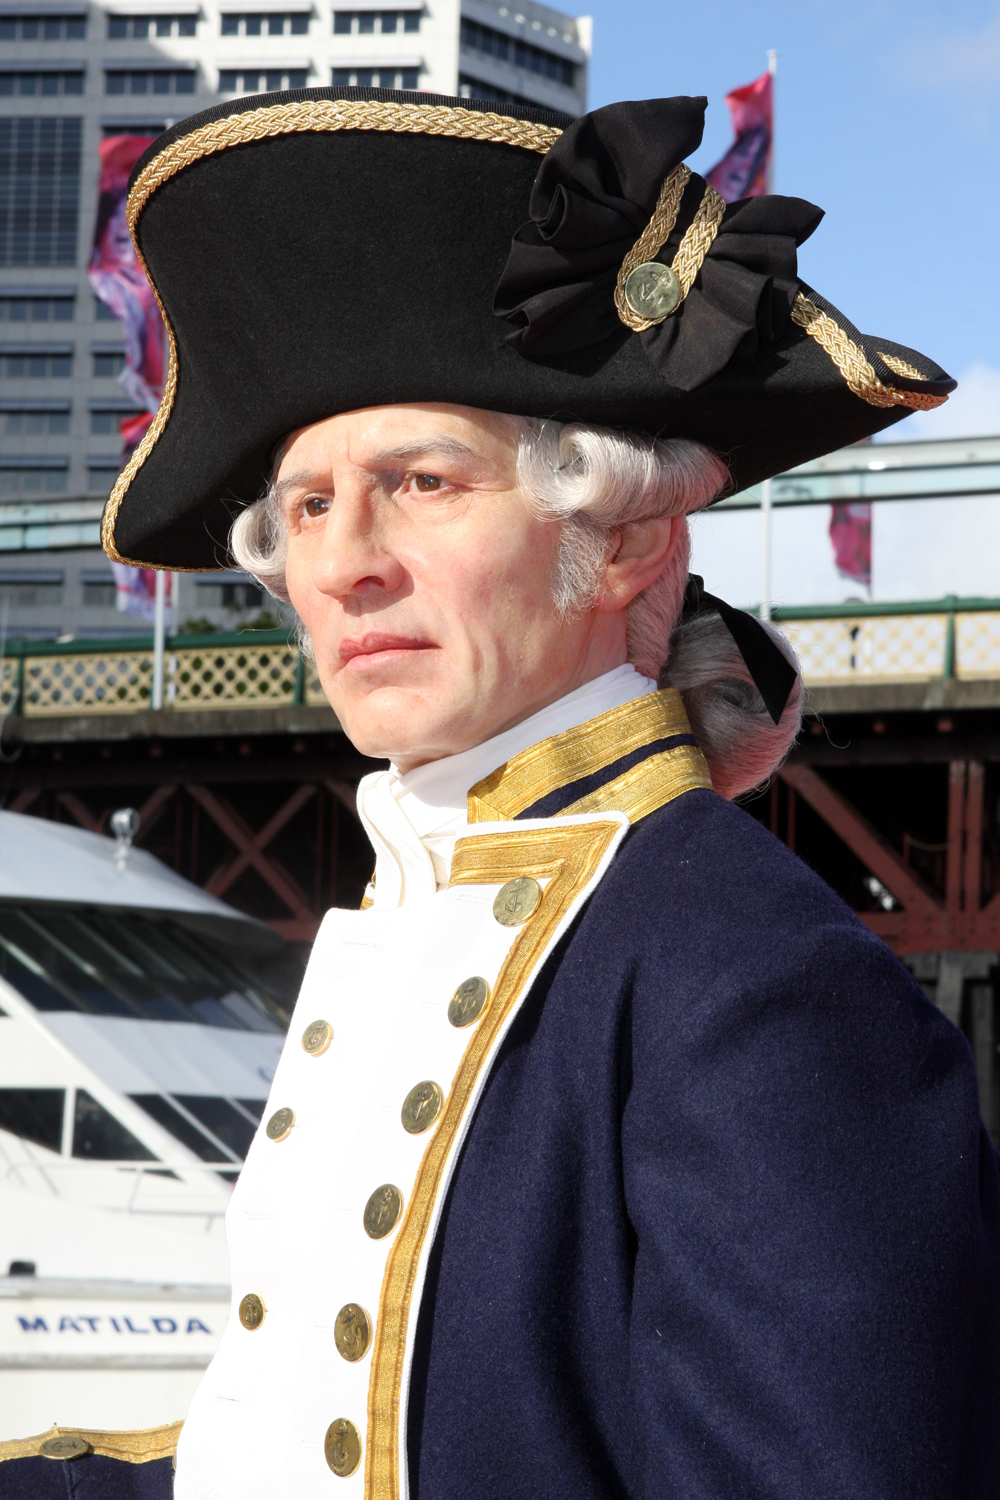 captain james cook The three voyages of captain james cook on behalf of the british admiralty the first, that of the hms endeavour , left england in august 1768 and had its climax on april 20, 1770, when a crewman sighted southeastern australia.